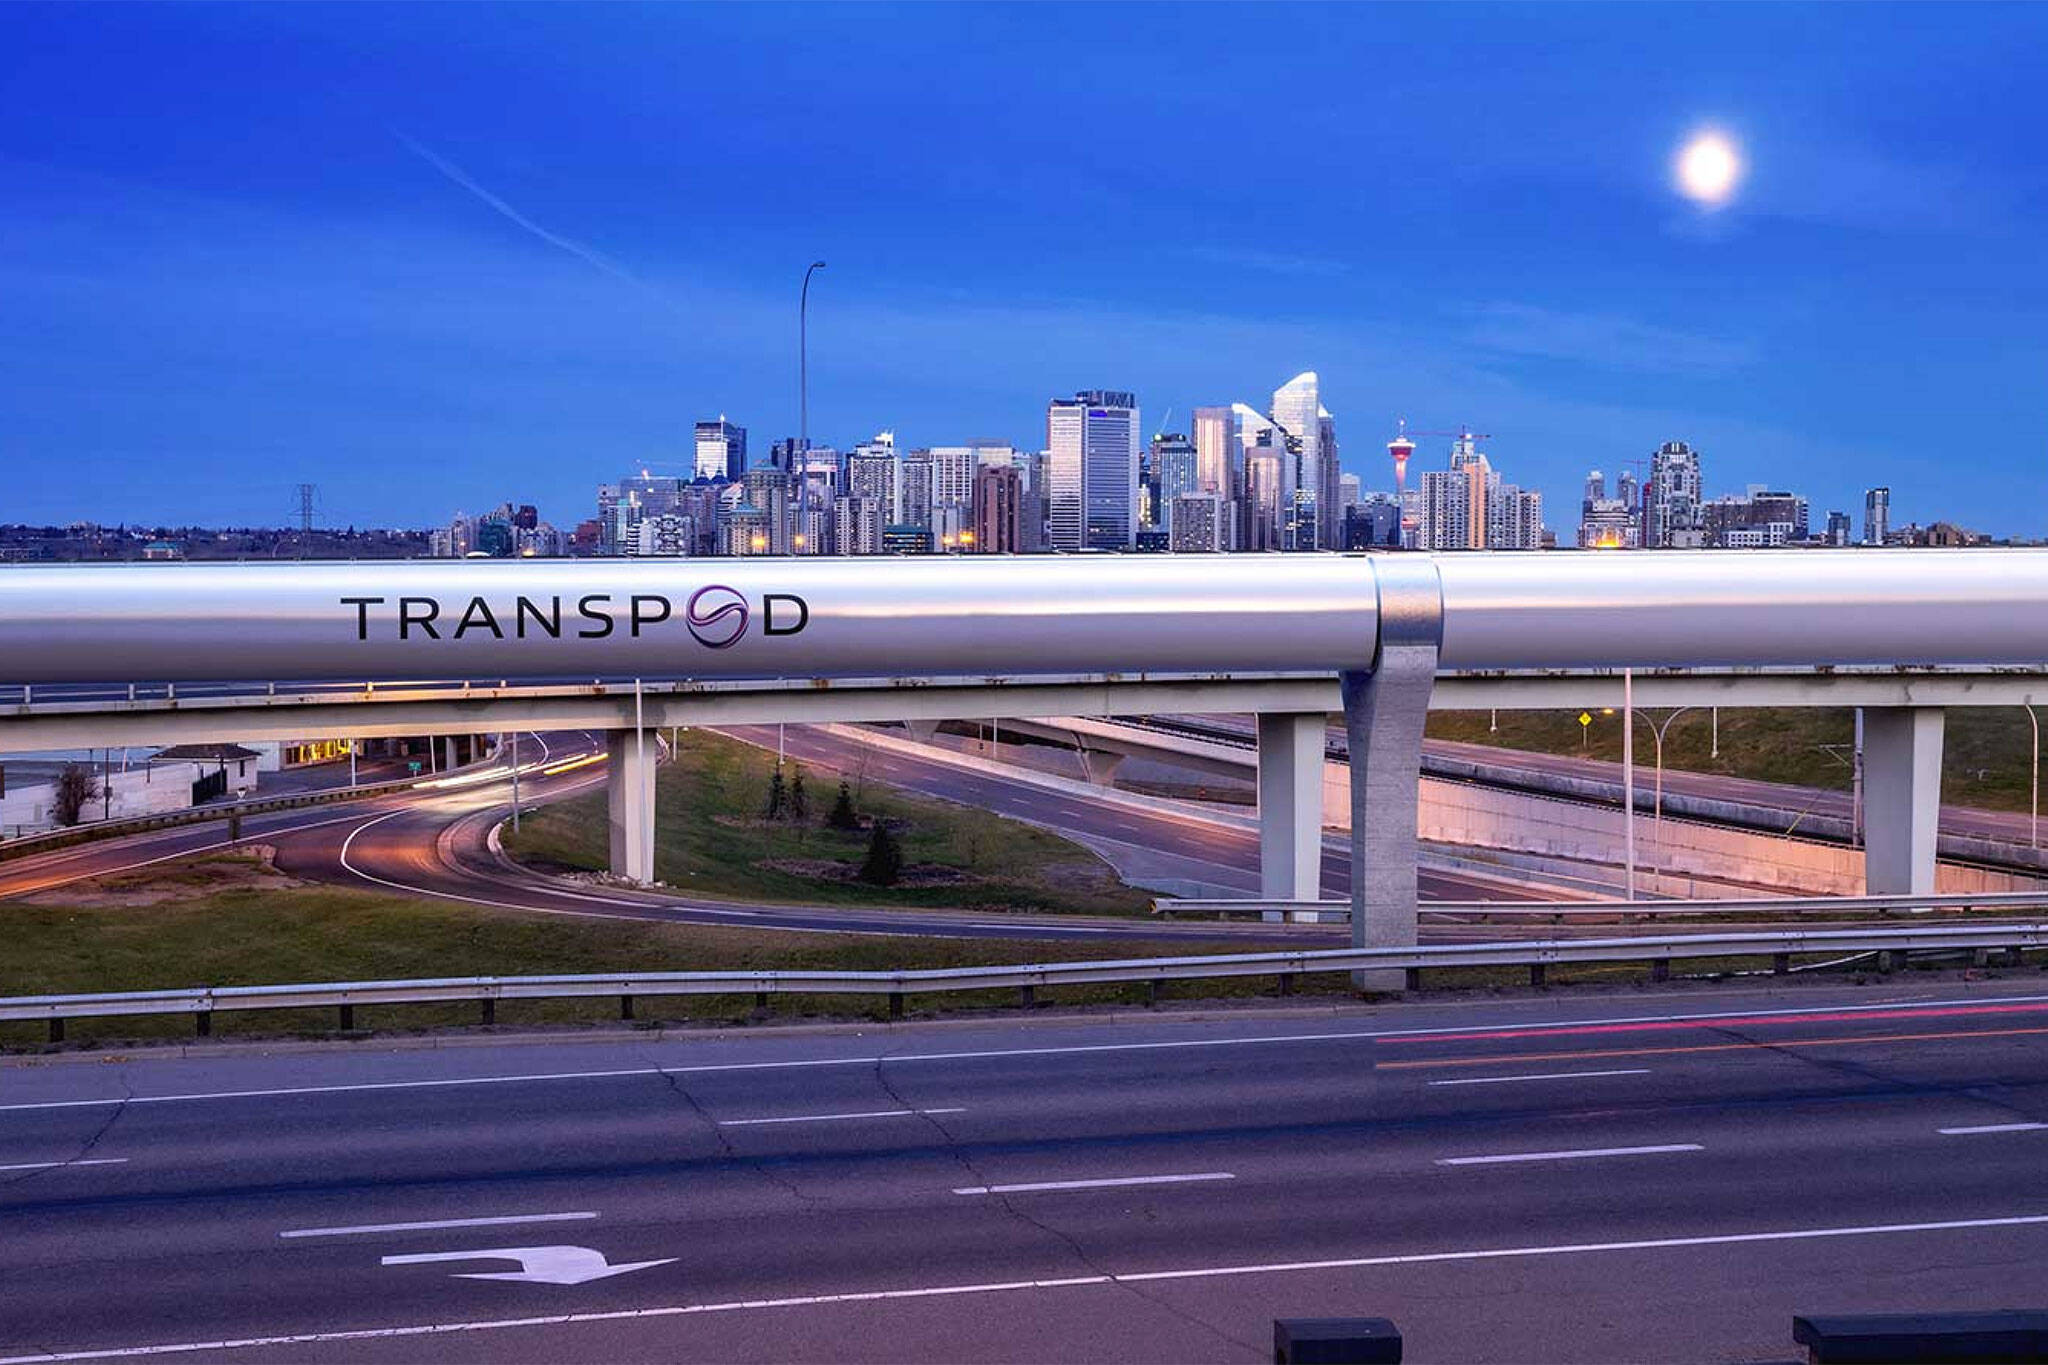 hyperloop edmonton